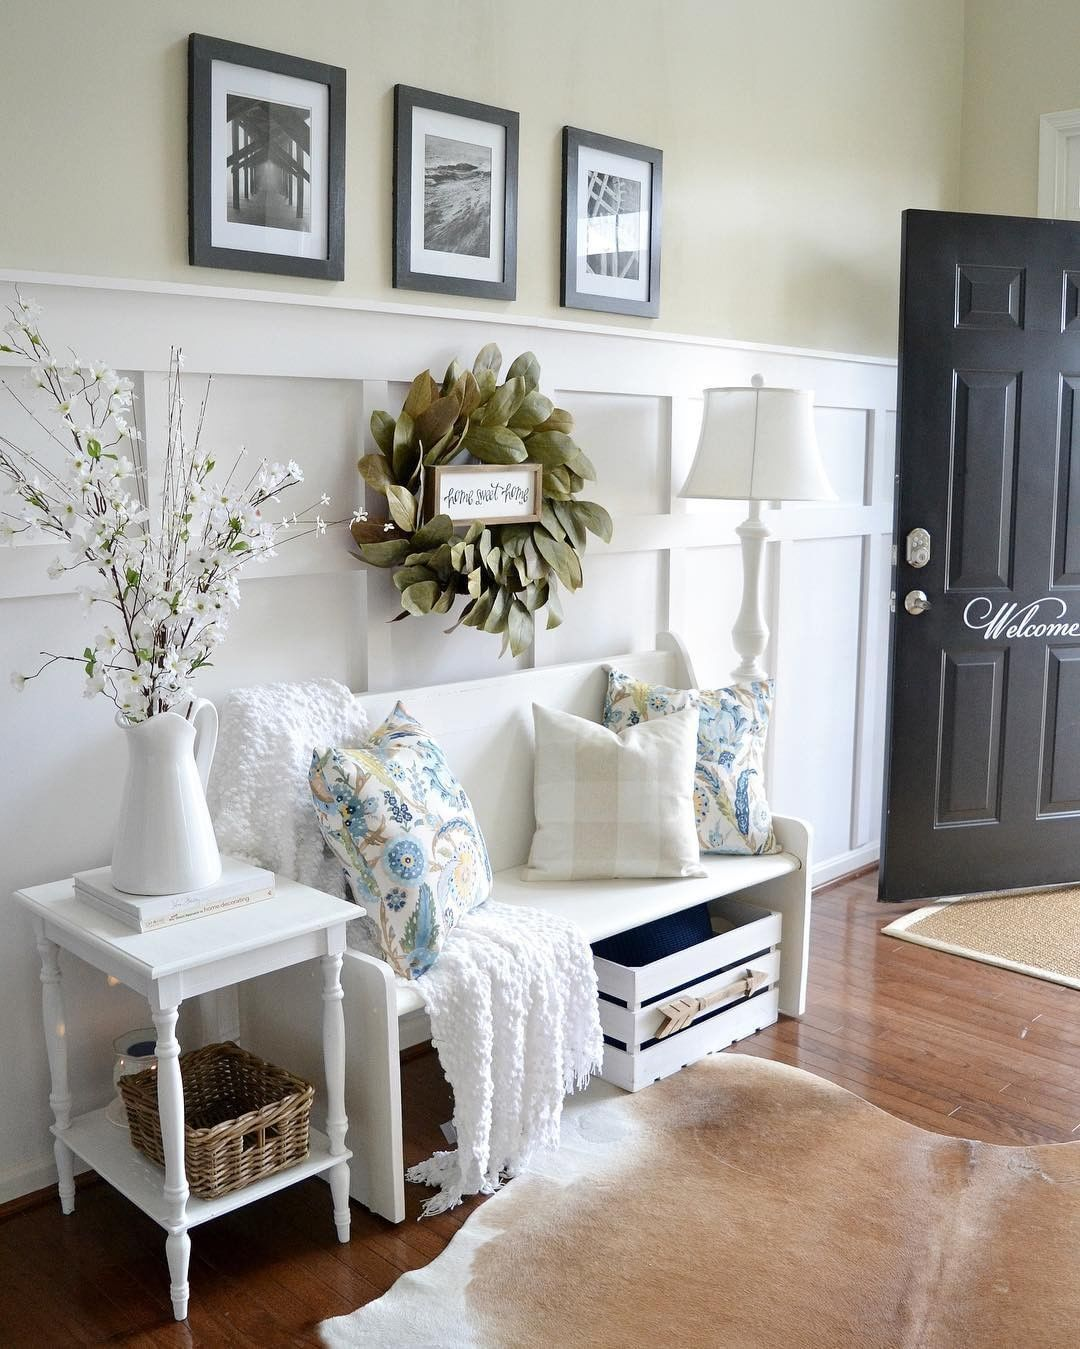 Attractive Interiors Home Staging: @adventuresindecorating1's Floral And Bright Elements Are